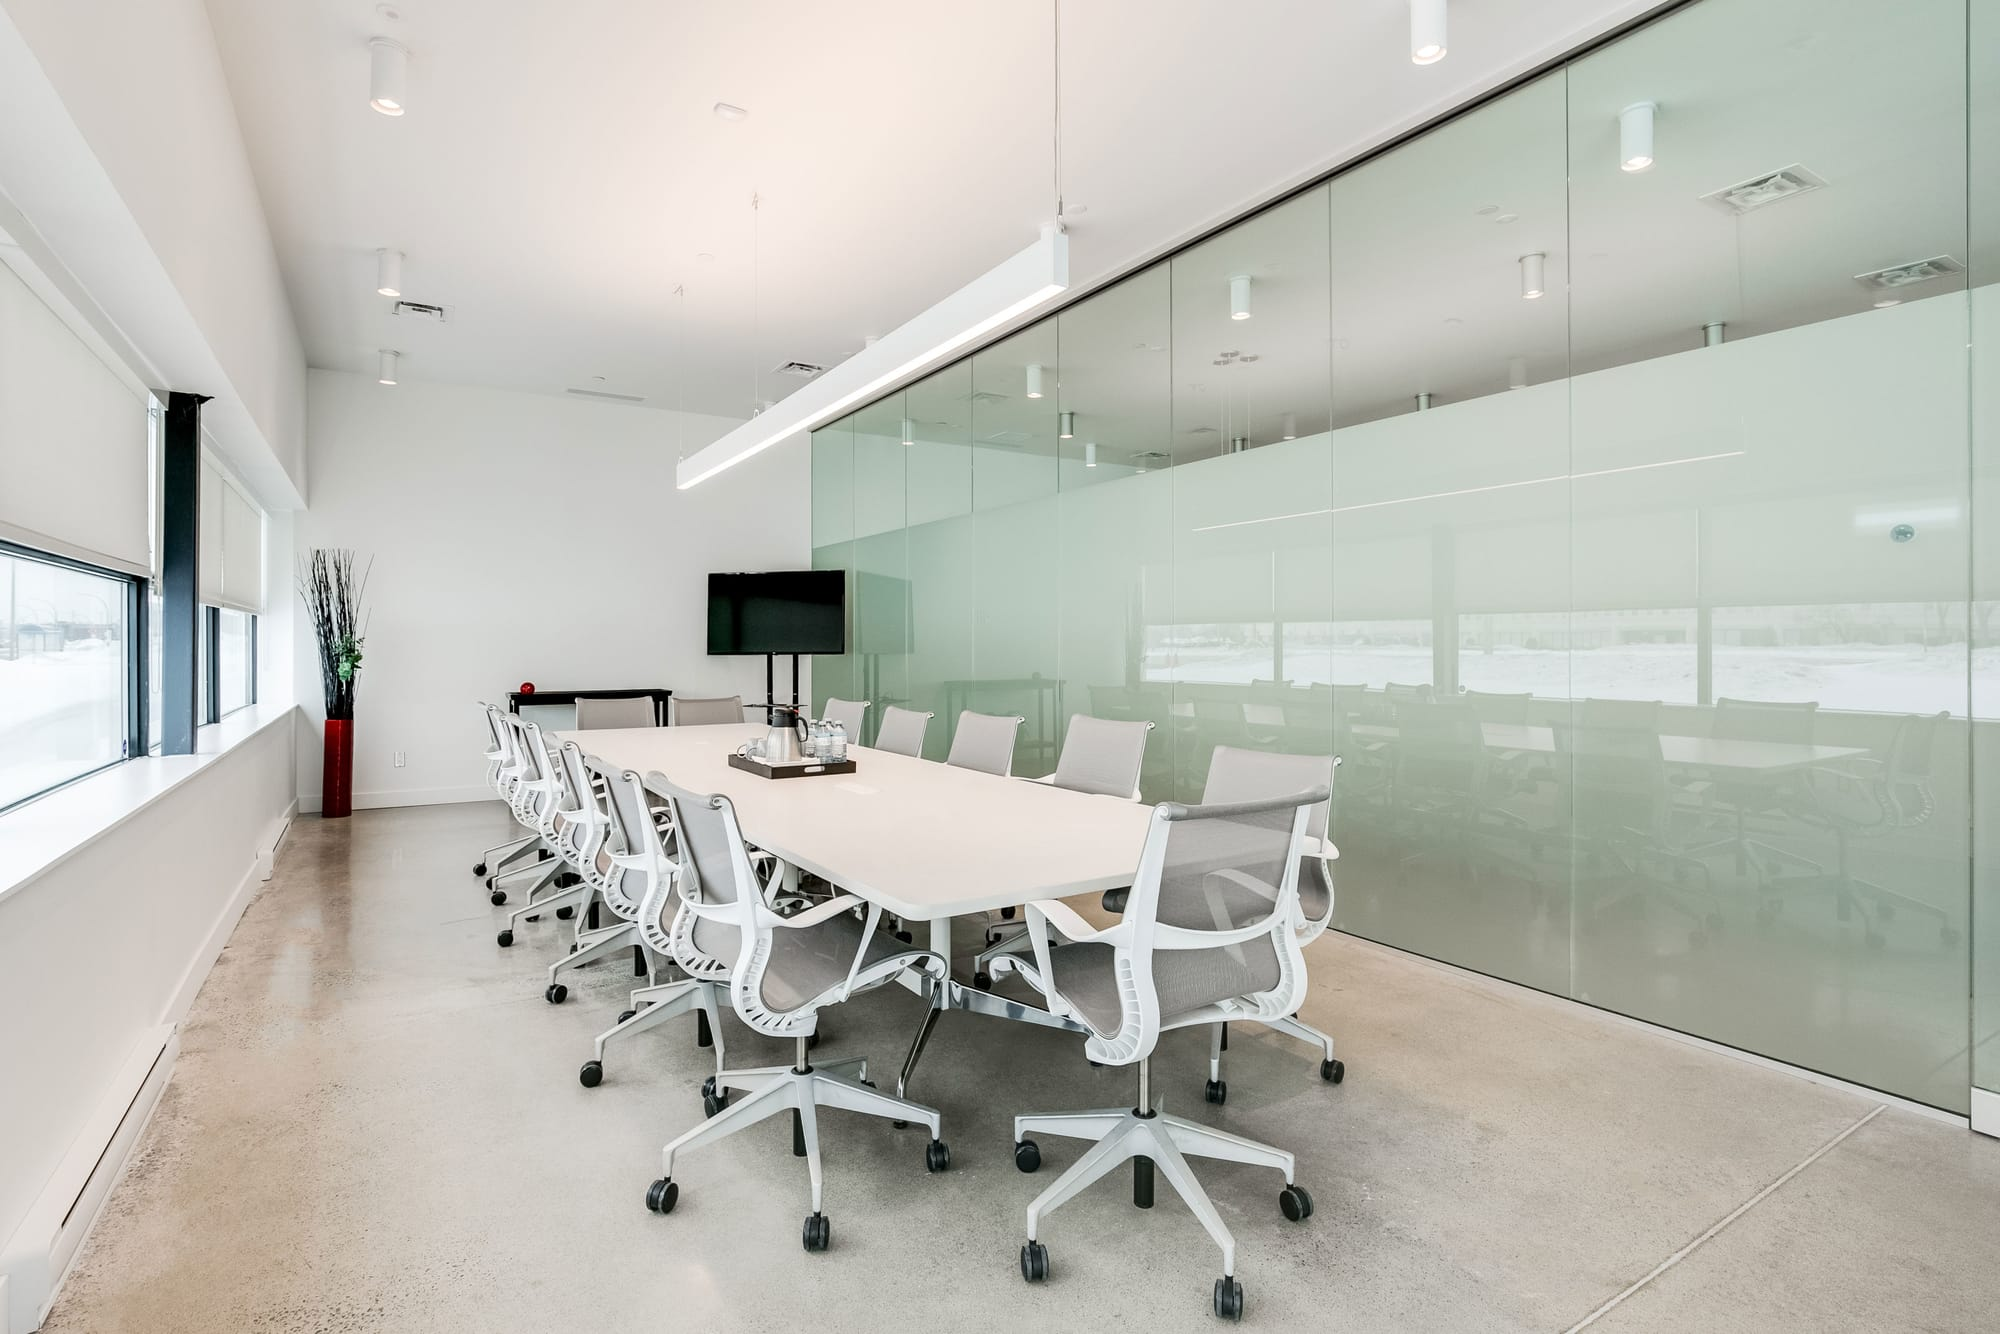 conference room in a newly renovated office